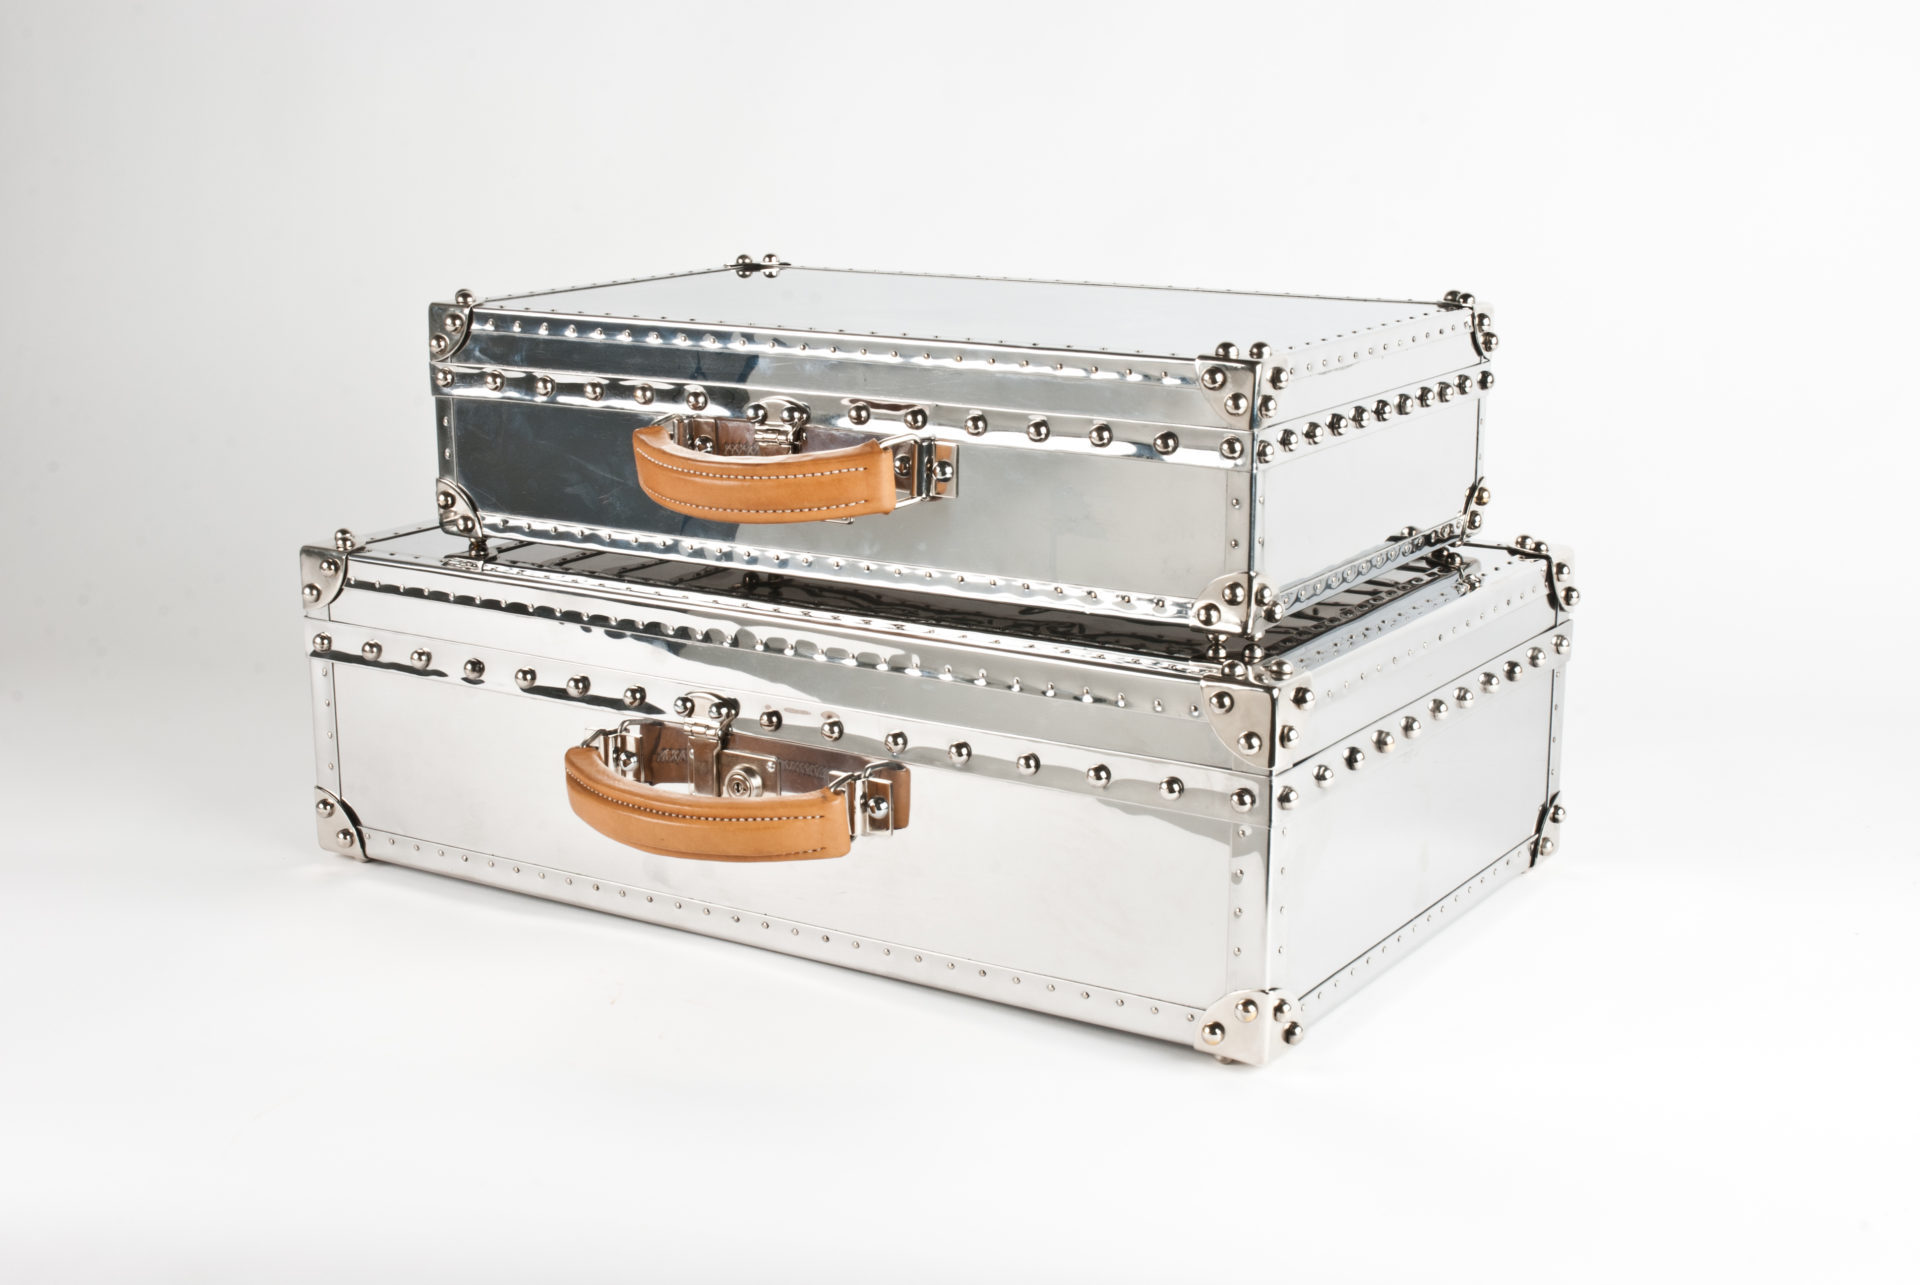 CLOSED METAL SUITCASES